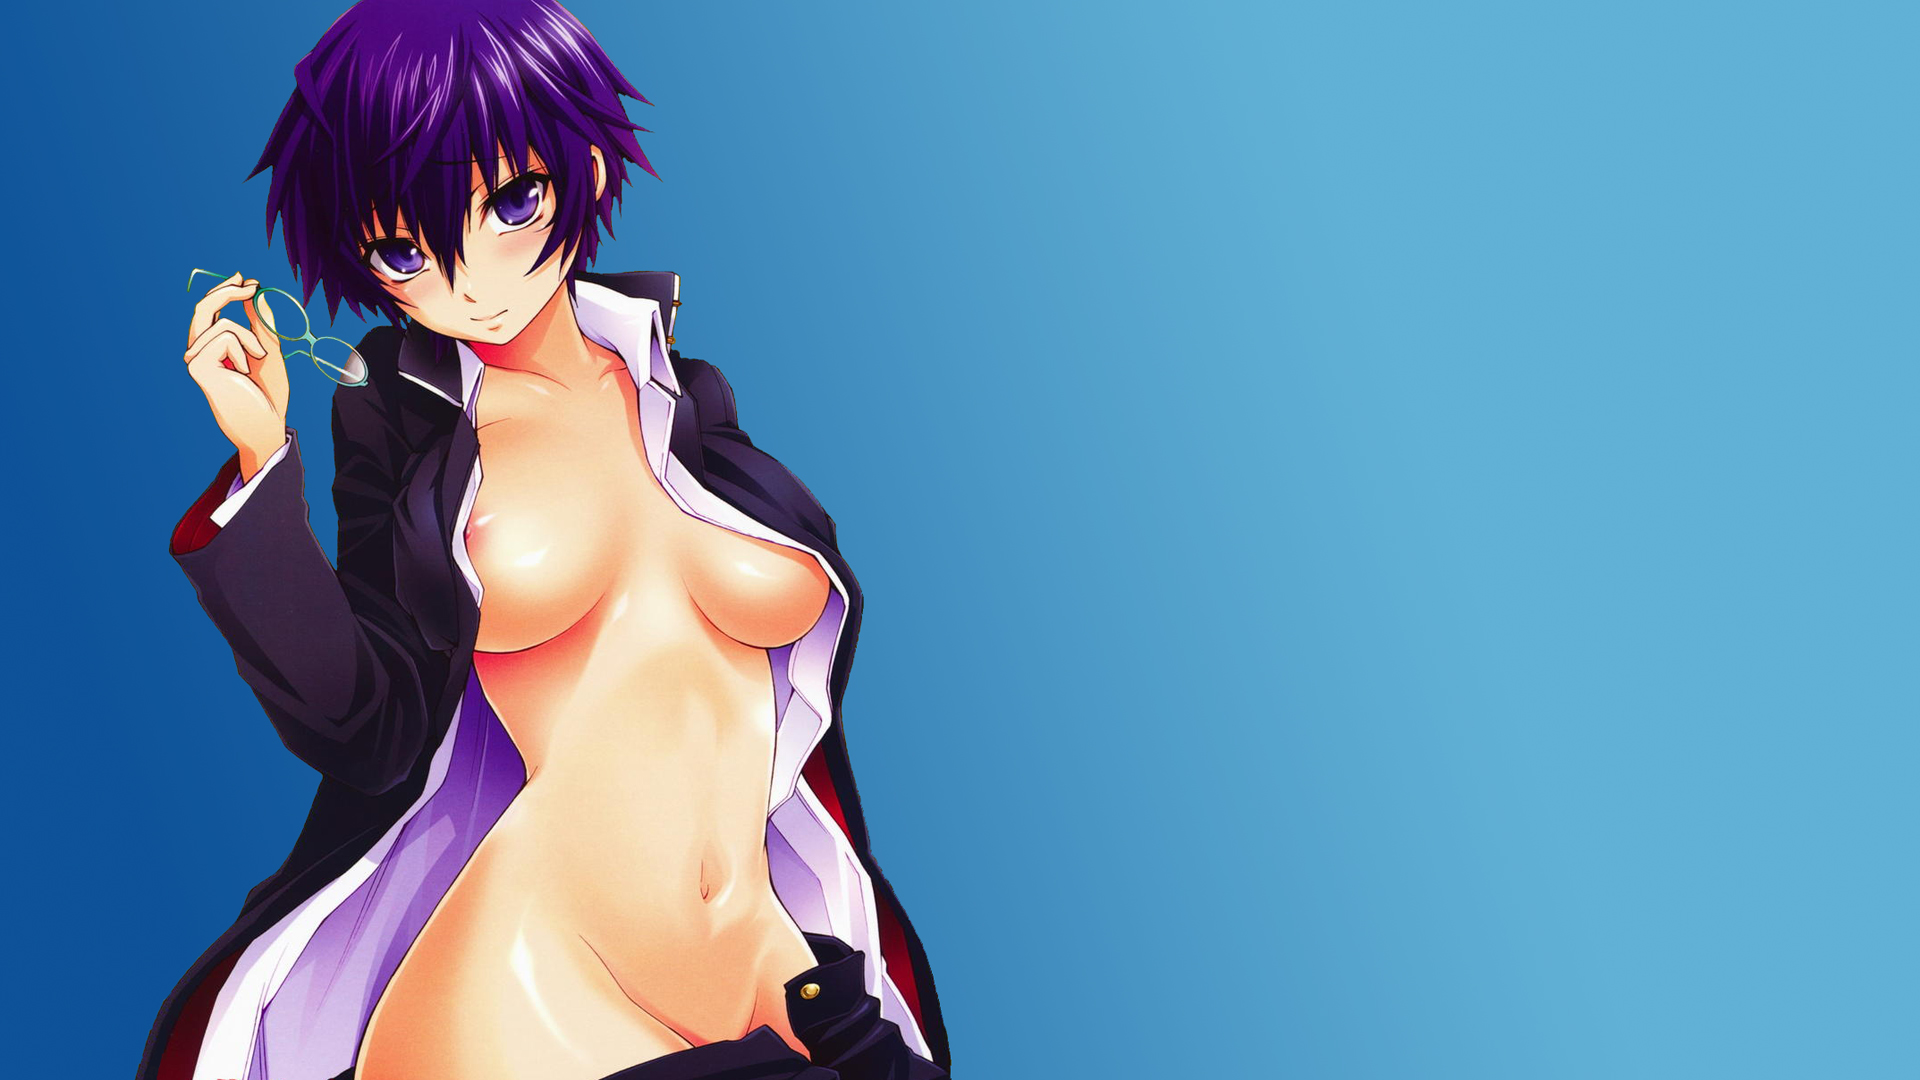 Android hentai wallpapers sex movies